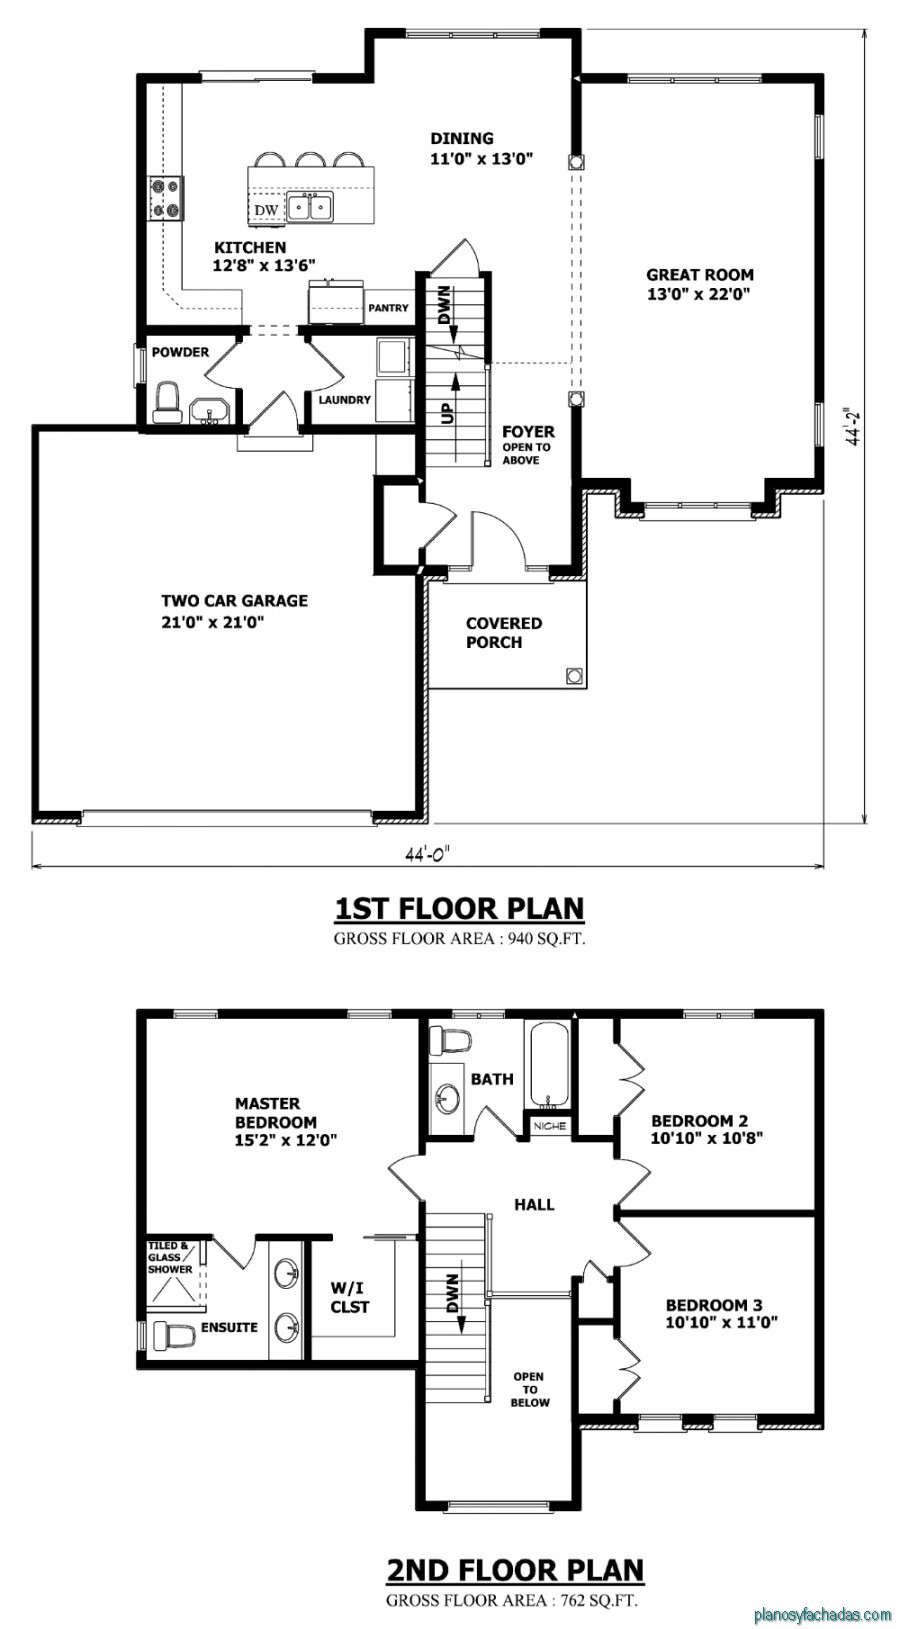 15 planos de casas peque as de dos pisos planos y for Great small house plans